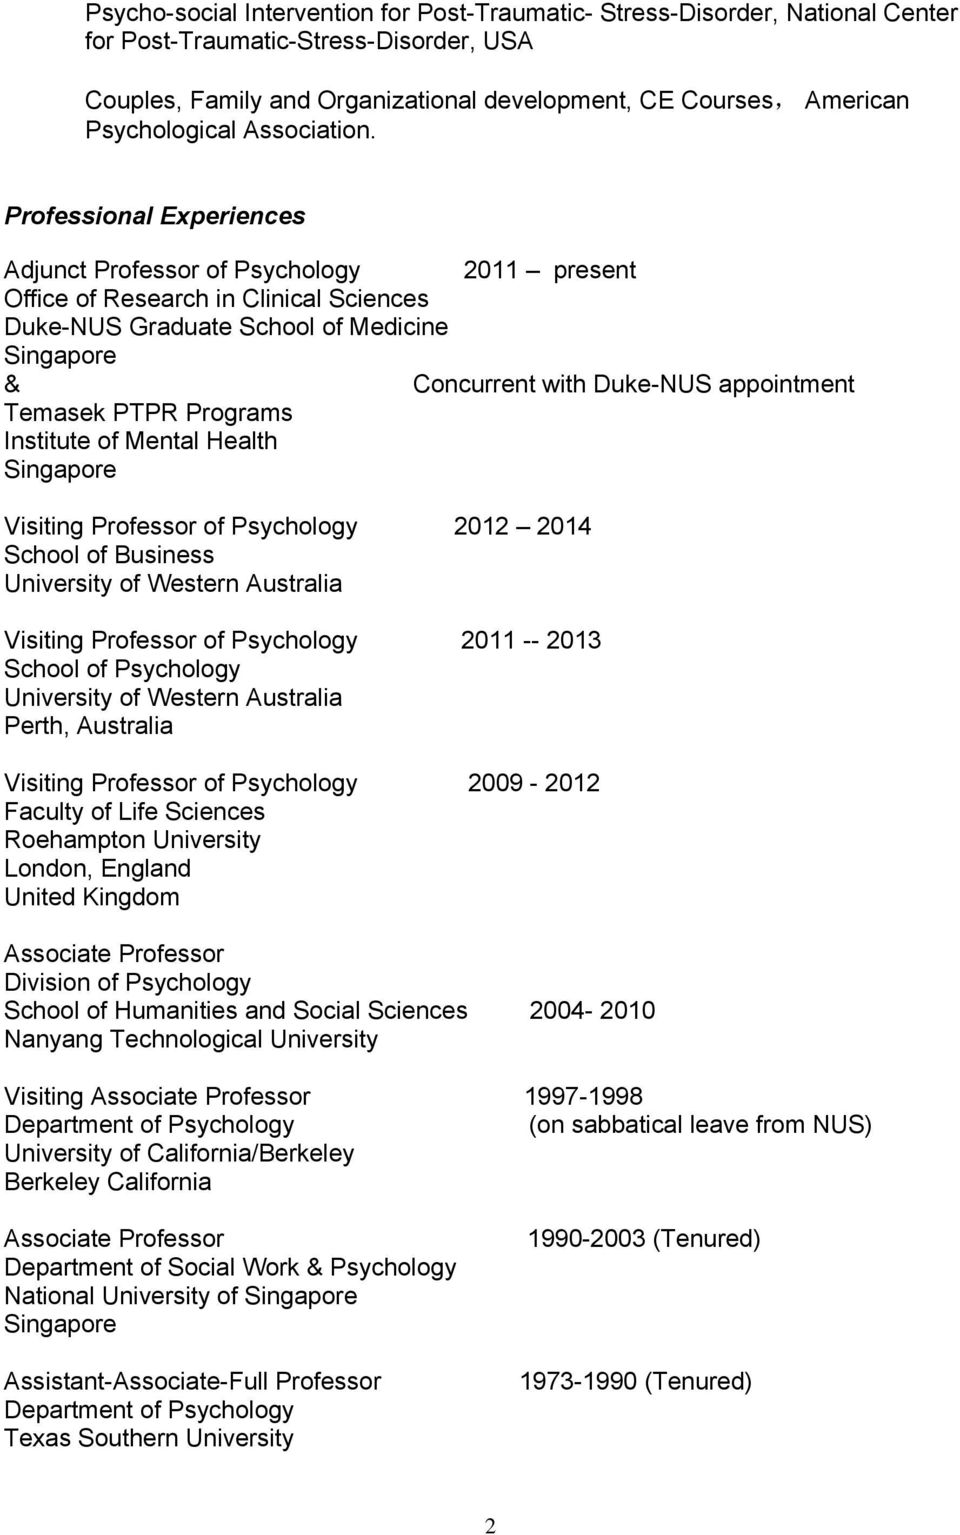 Professional Experiences Adjunct Professor of Psychology 2011 present Office of Research in Clinical Sciences Duke-NUS Graduate School of Medicine Singapore & Concurrent with Duke-NUS appointment